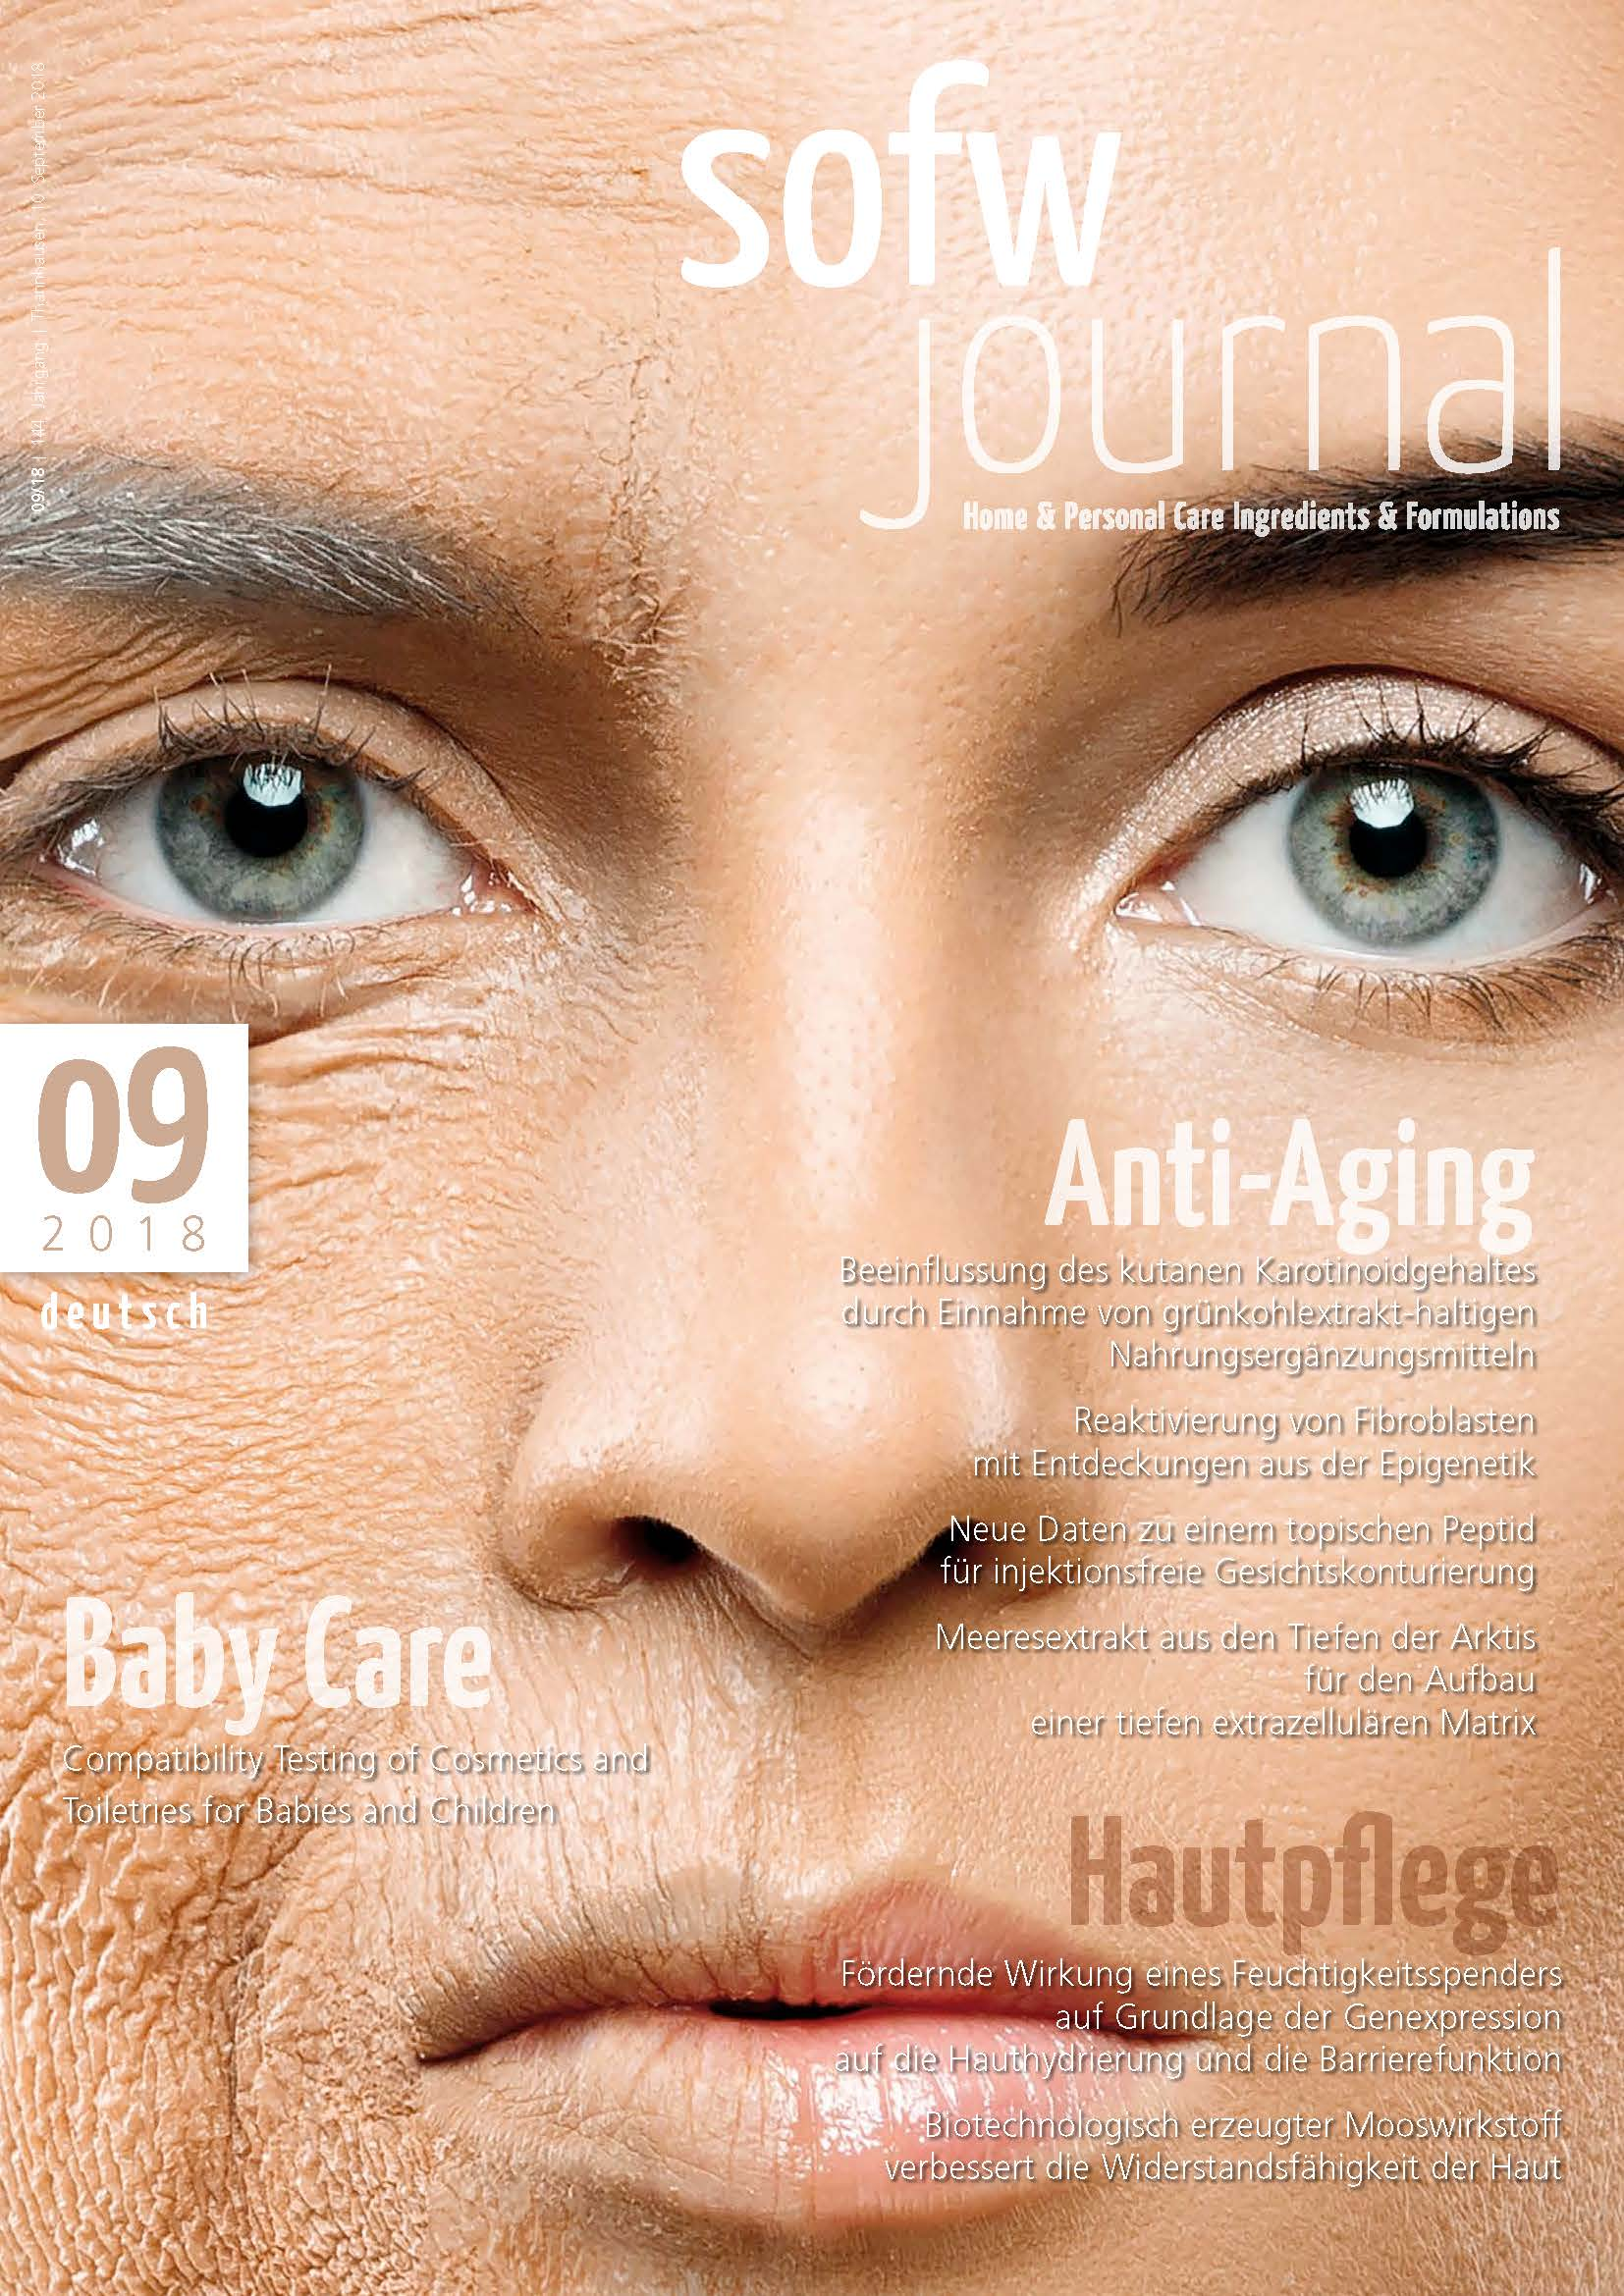 sofwjournal_de_2018_09_cover